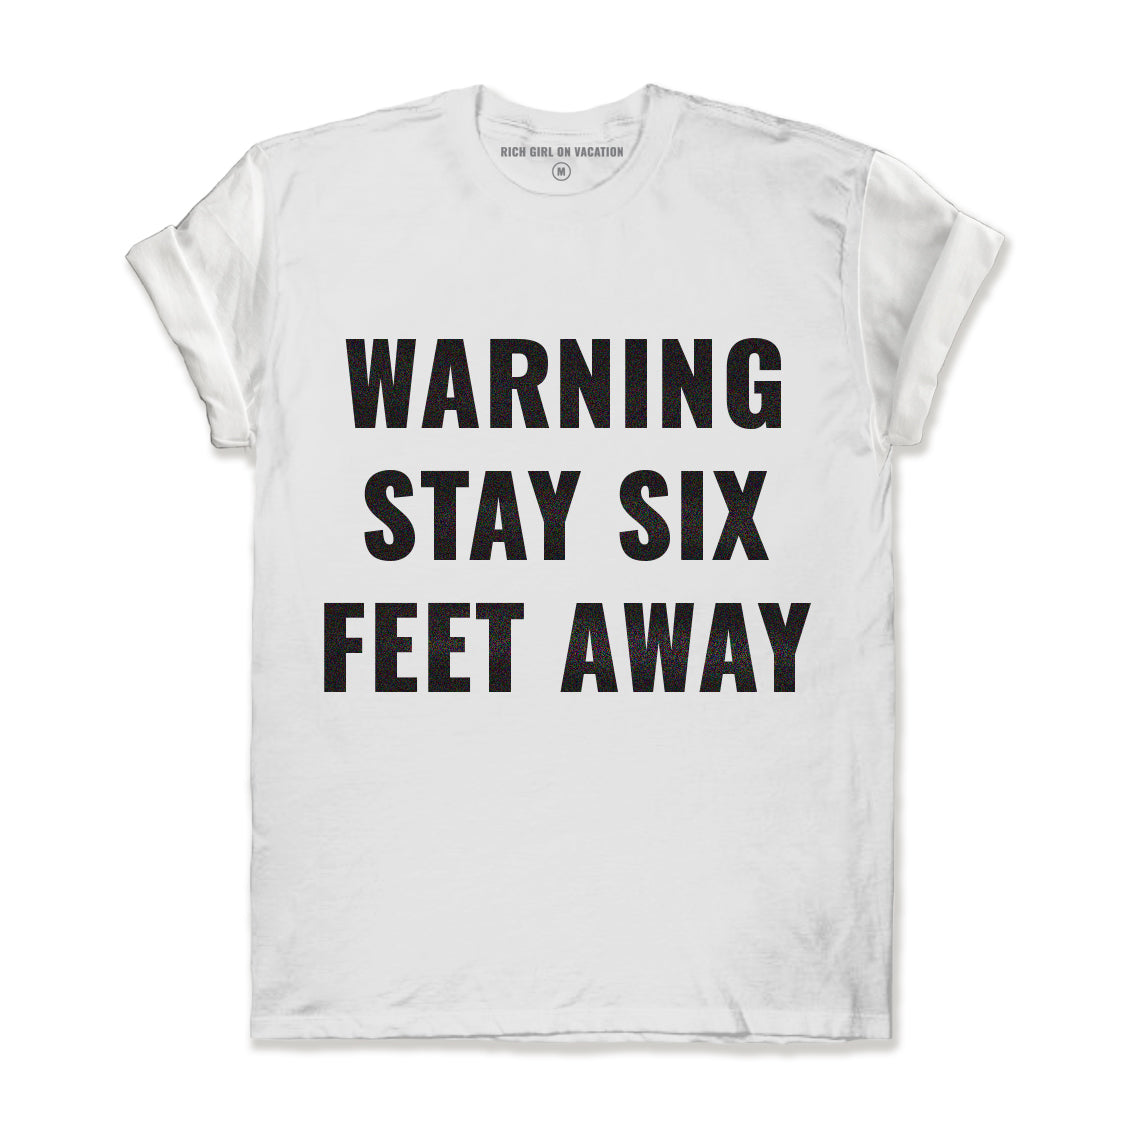 WARNING STAY SIX FEET AWAY